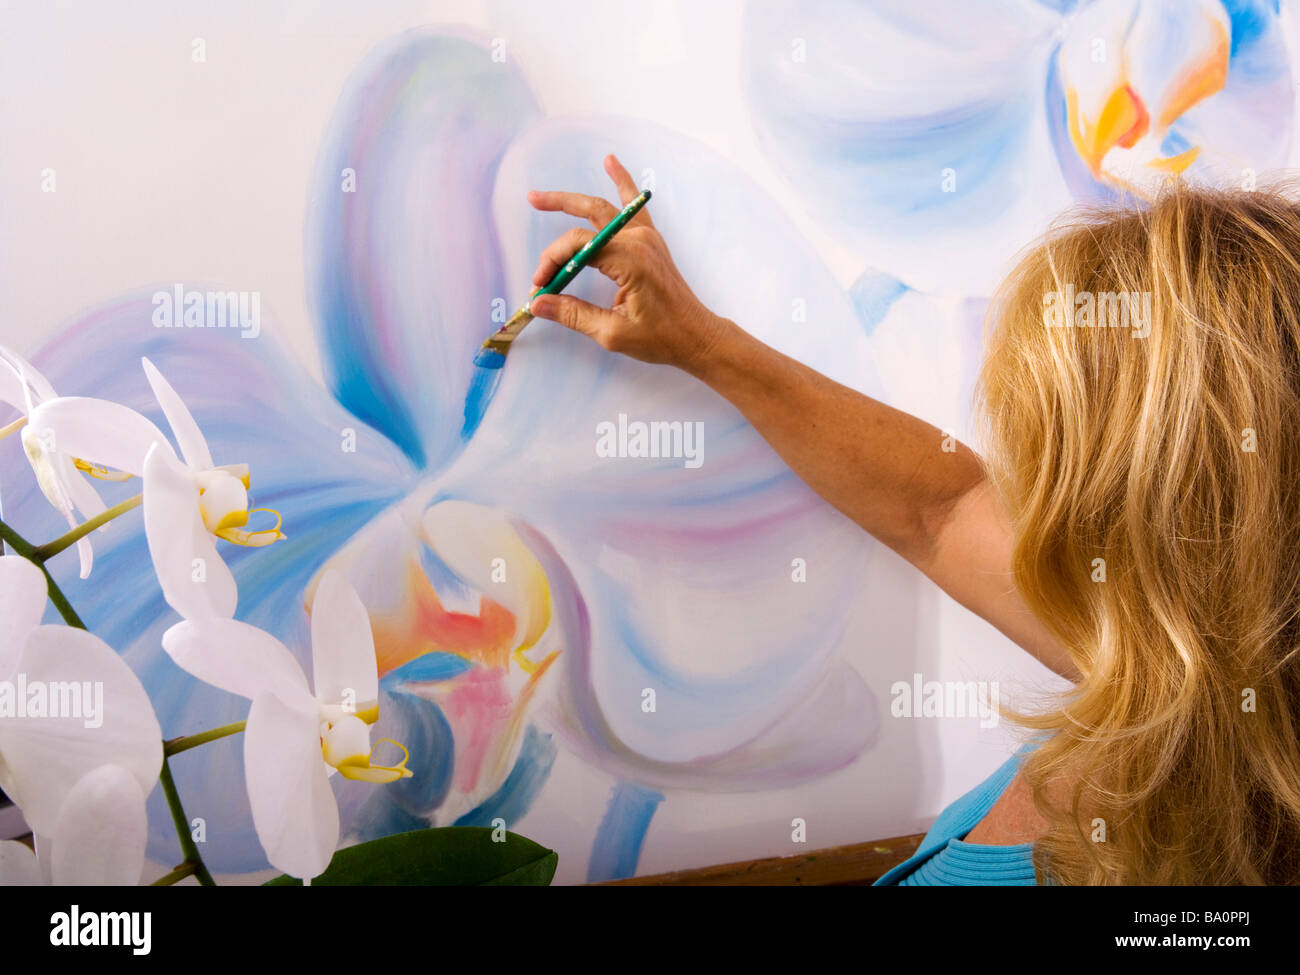 A female artist painting phalaenopsis orchids on canvas in her studio - Stock Image